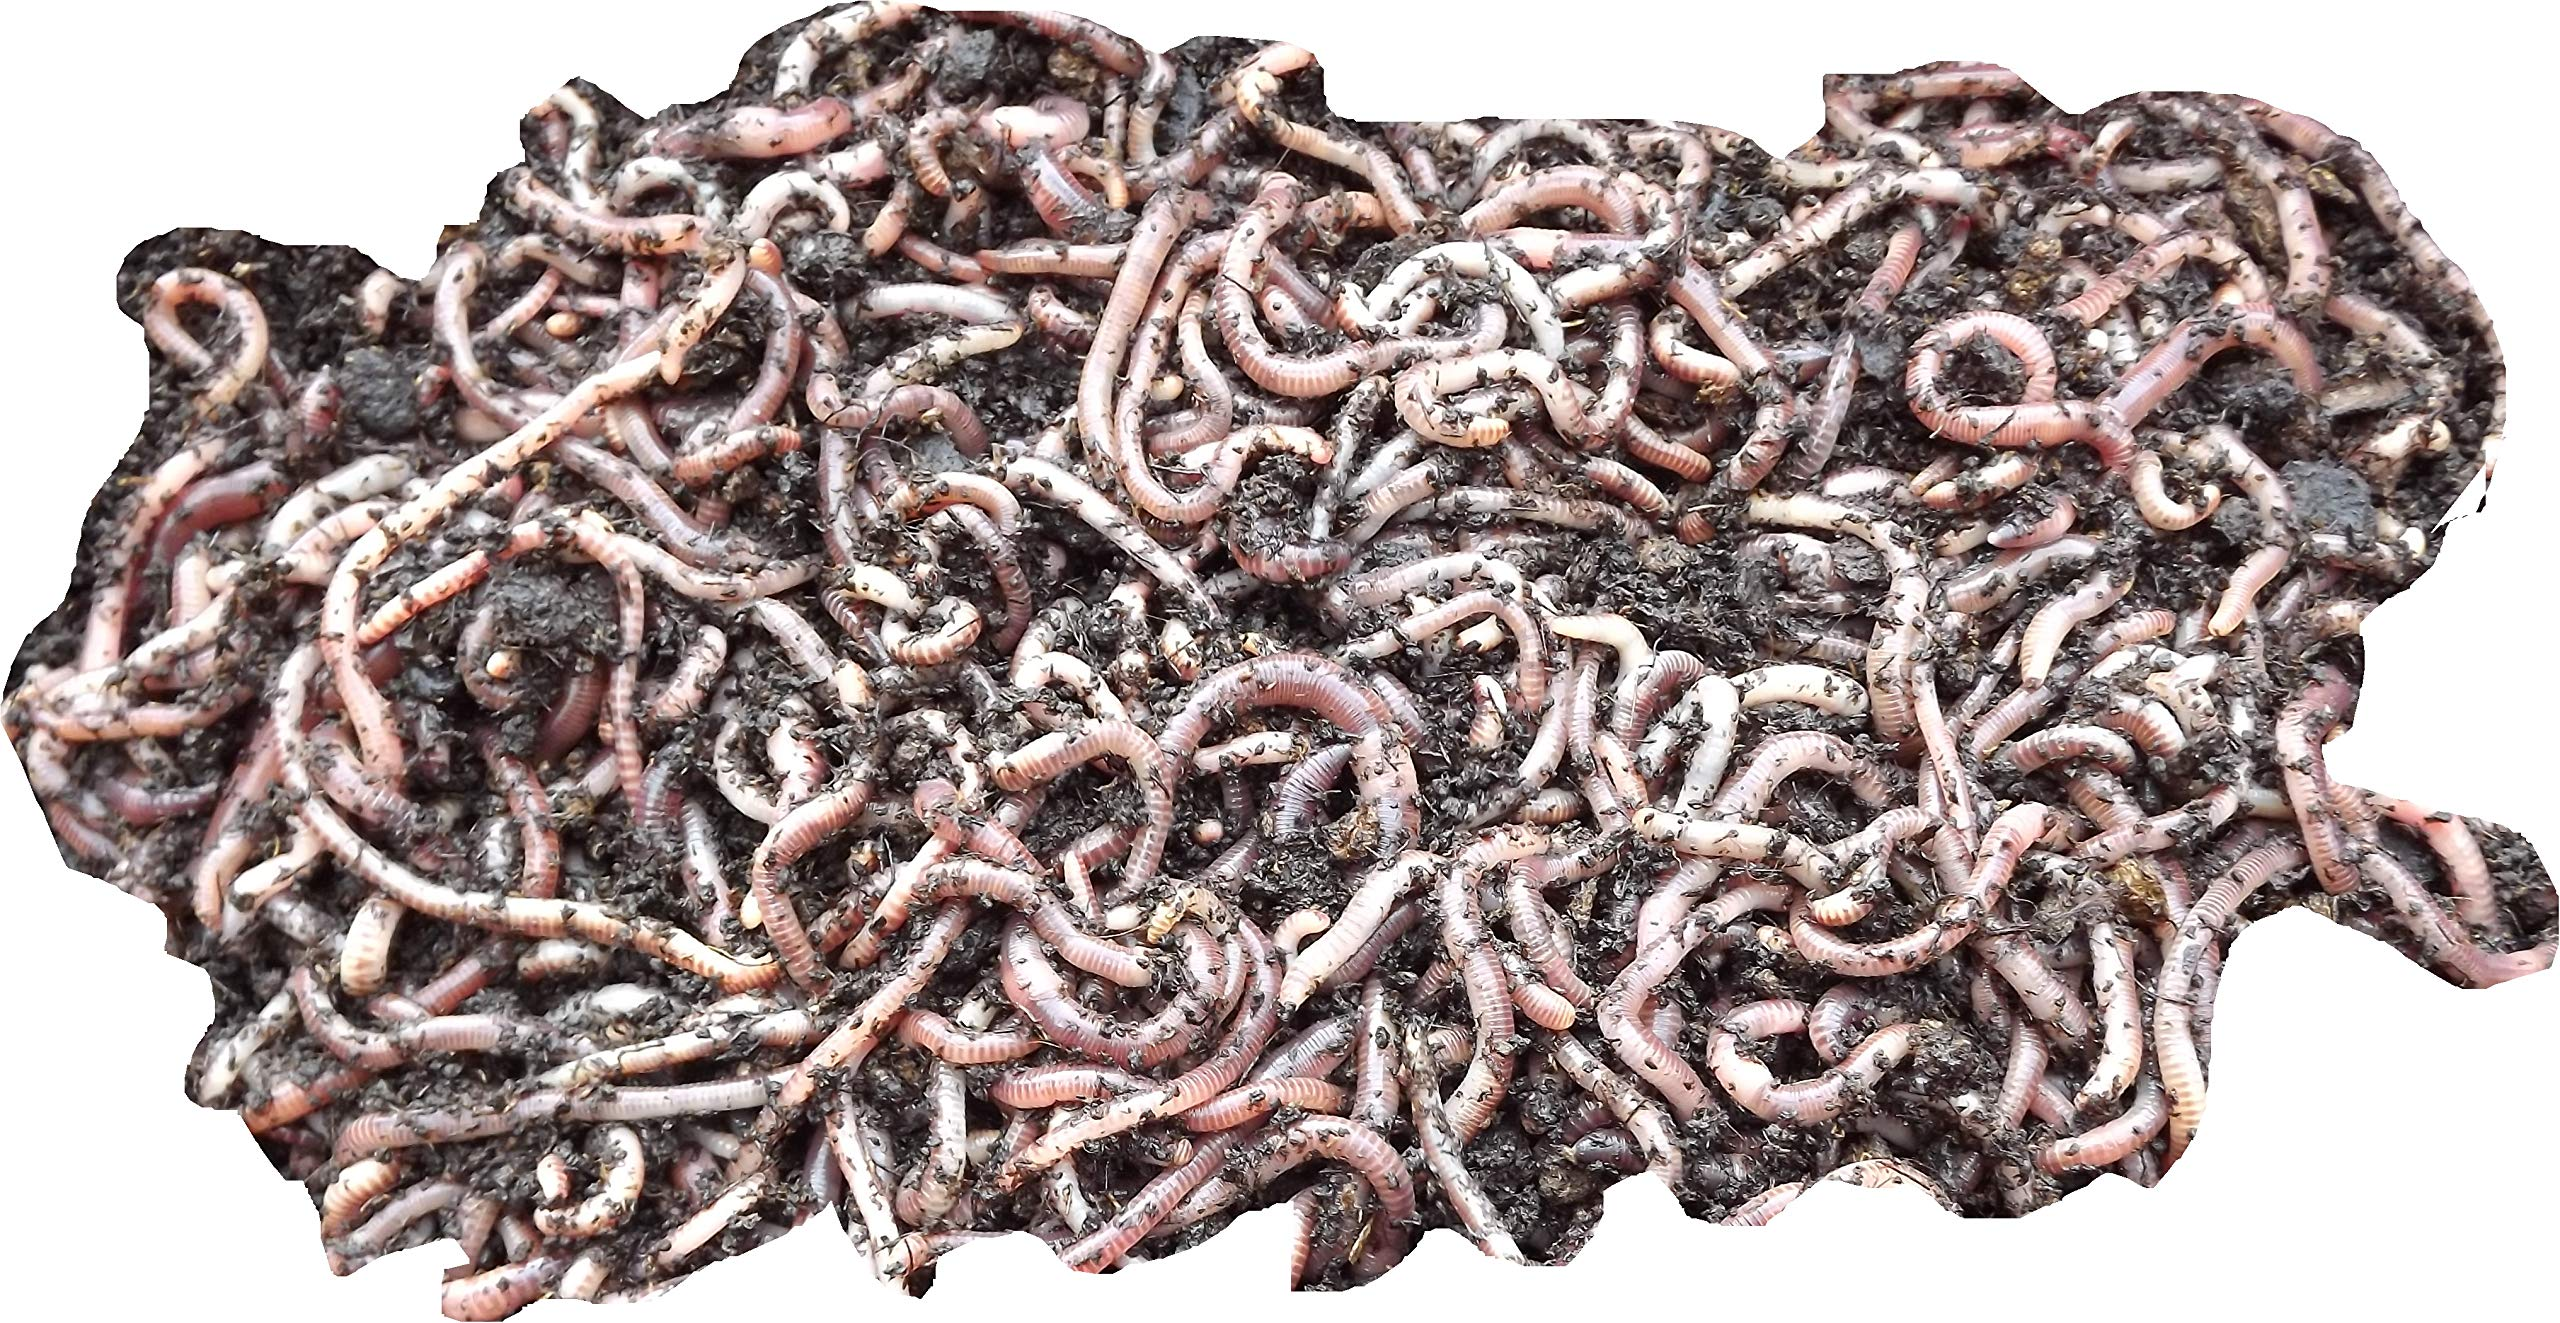 Tiger Earth Worms Composting Fishing Bait Small Large Tub